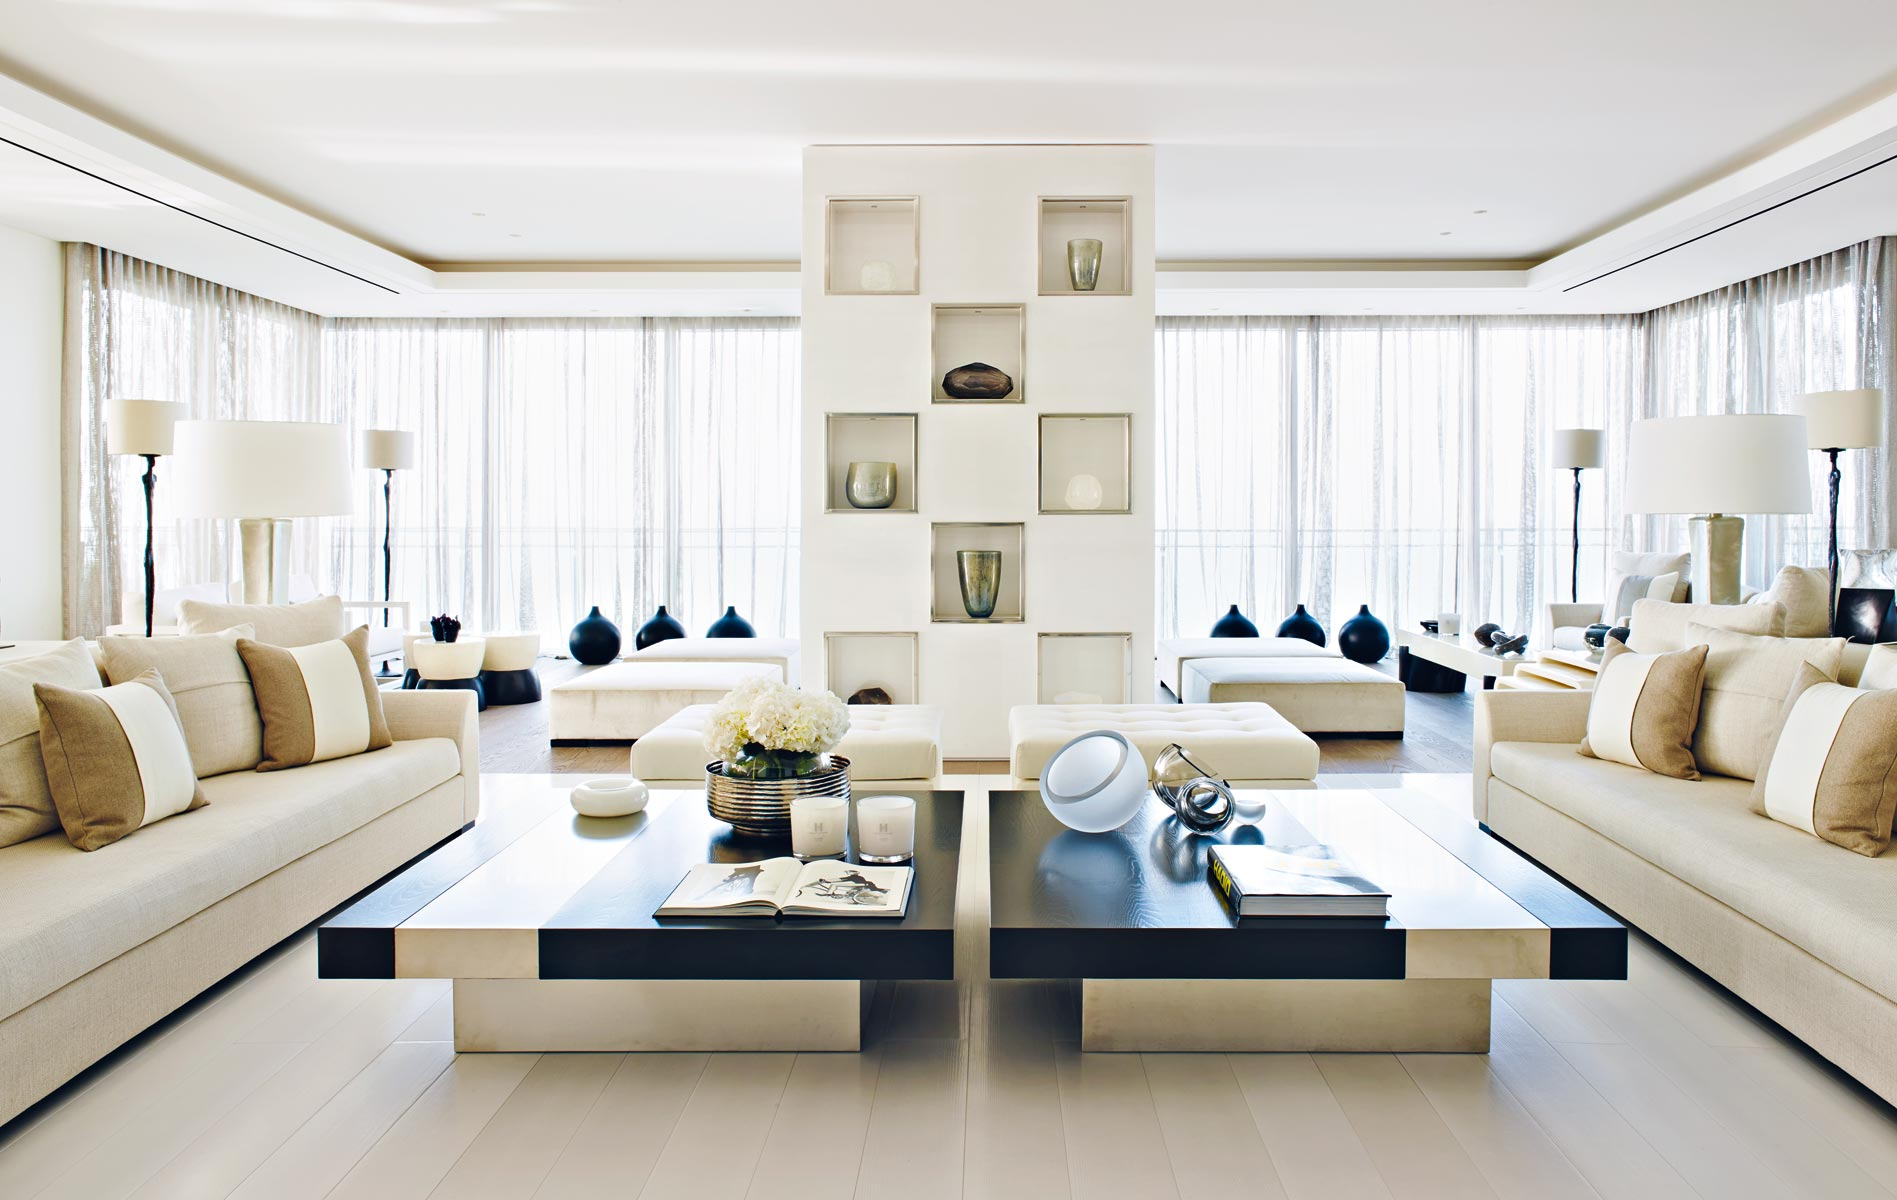 Top 10 kelly hoppen design ideas - Contemporary living room style ...